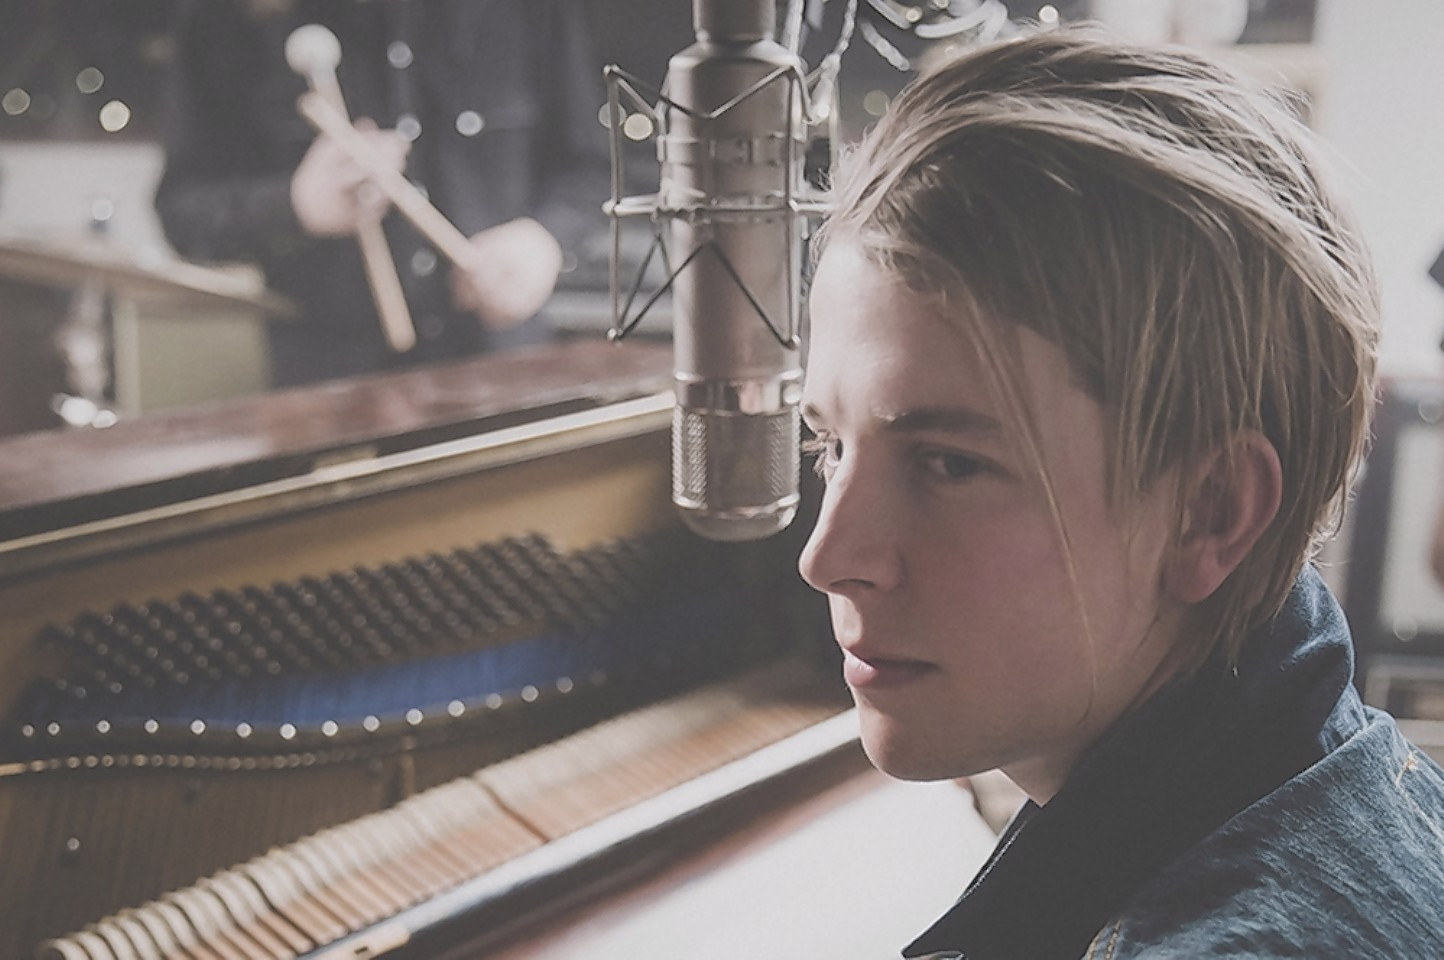 Tom Odell will appear at the Music Hall as part of the True North festival